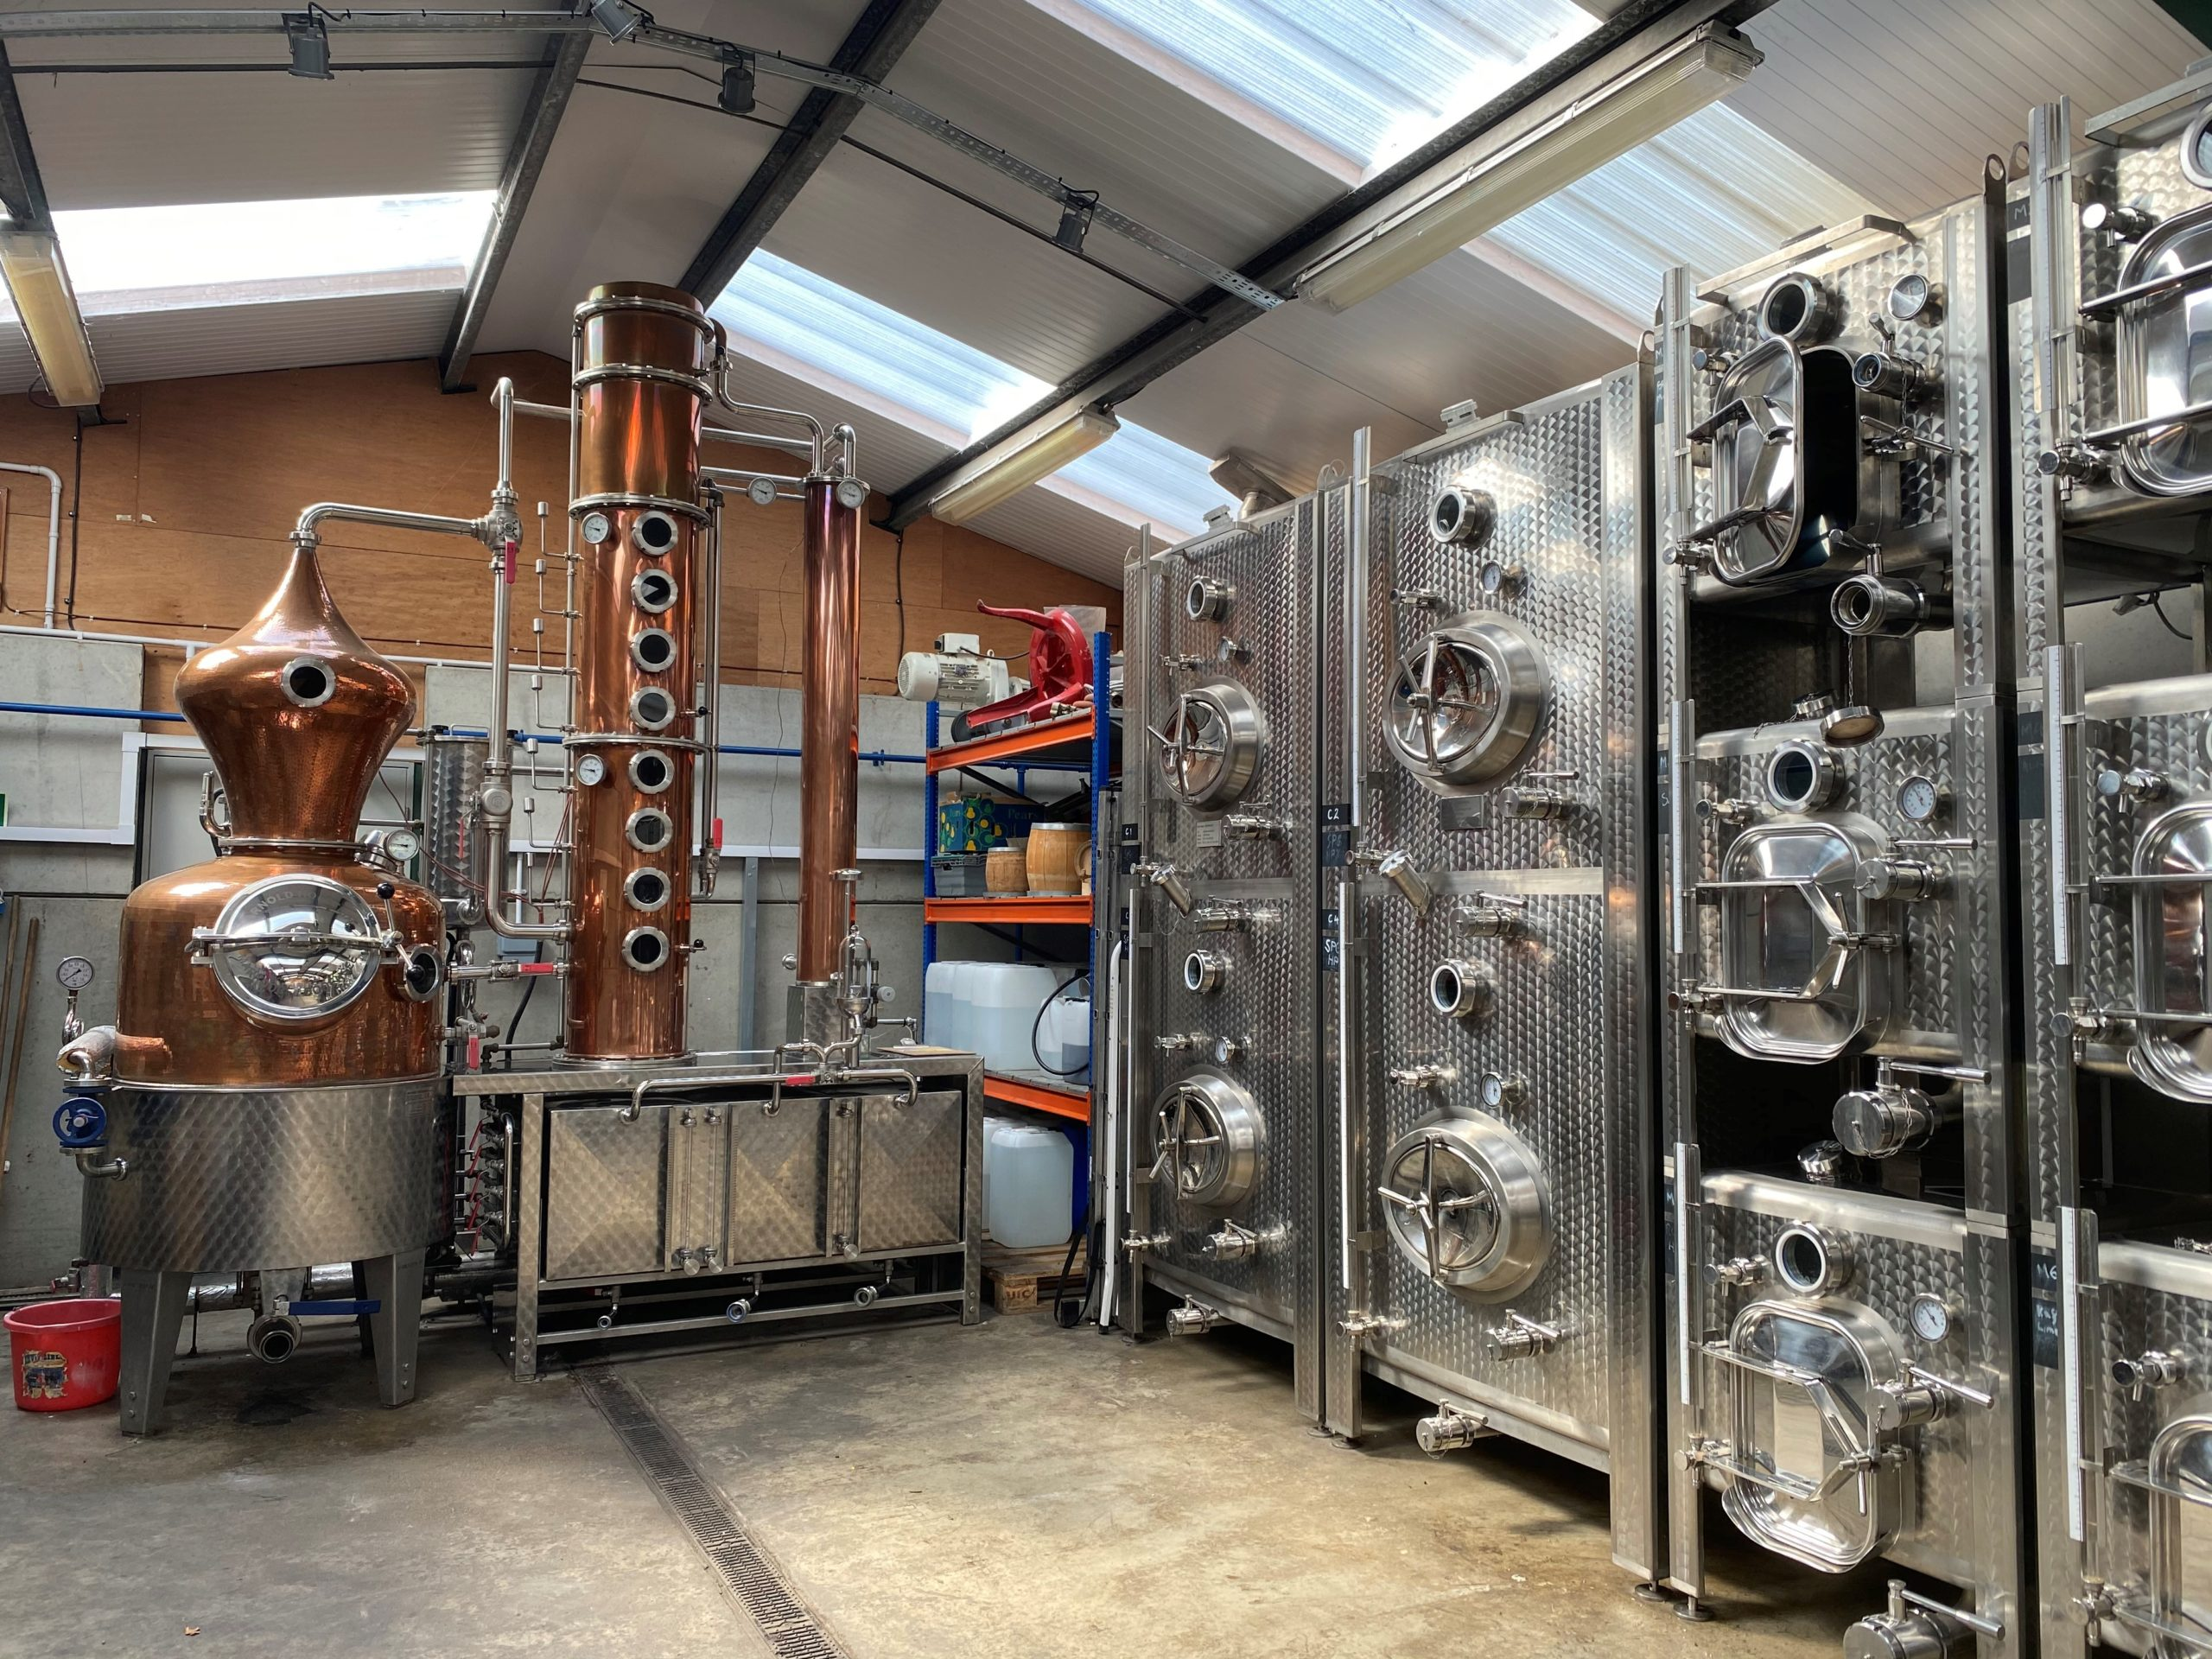 One of Silent Pool's copper stills